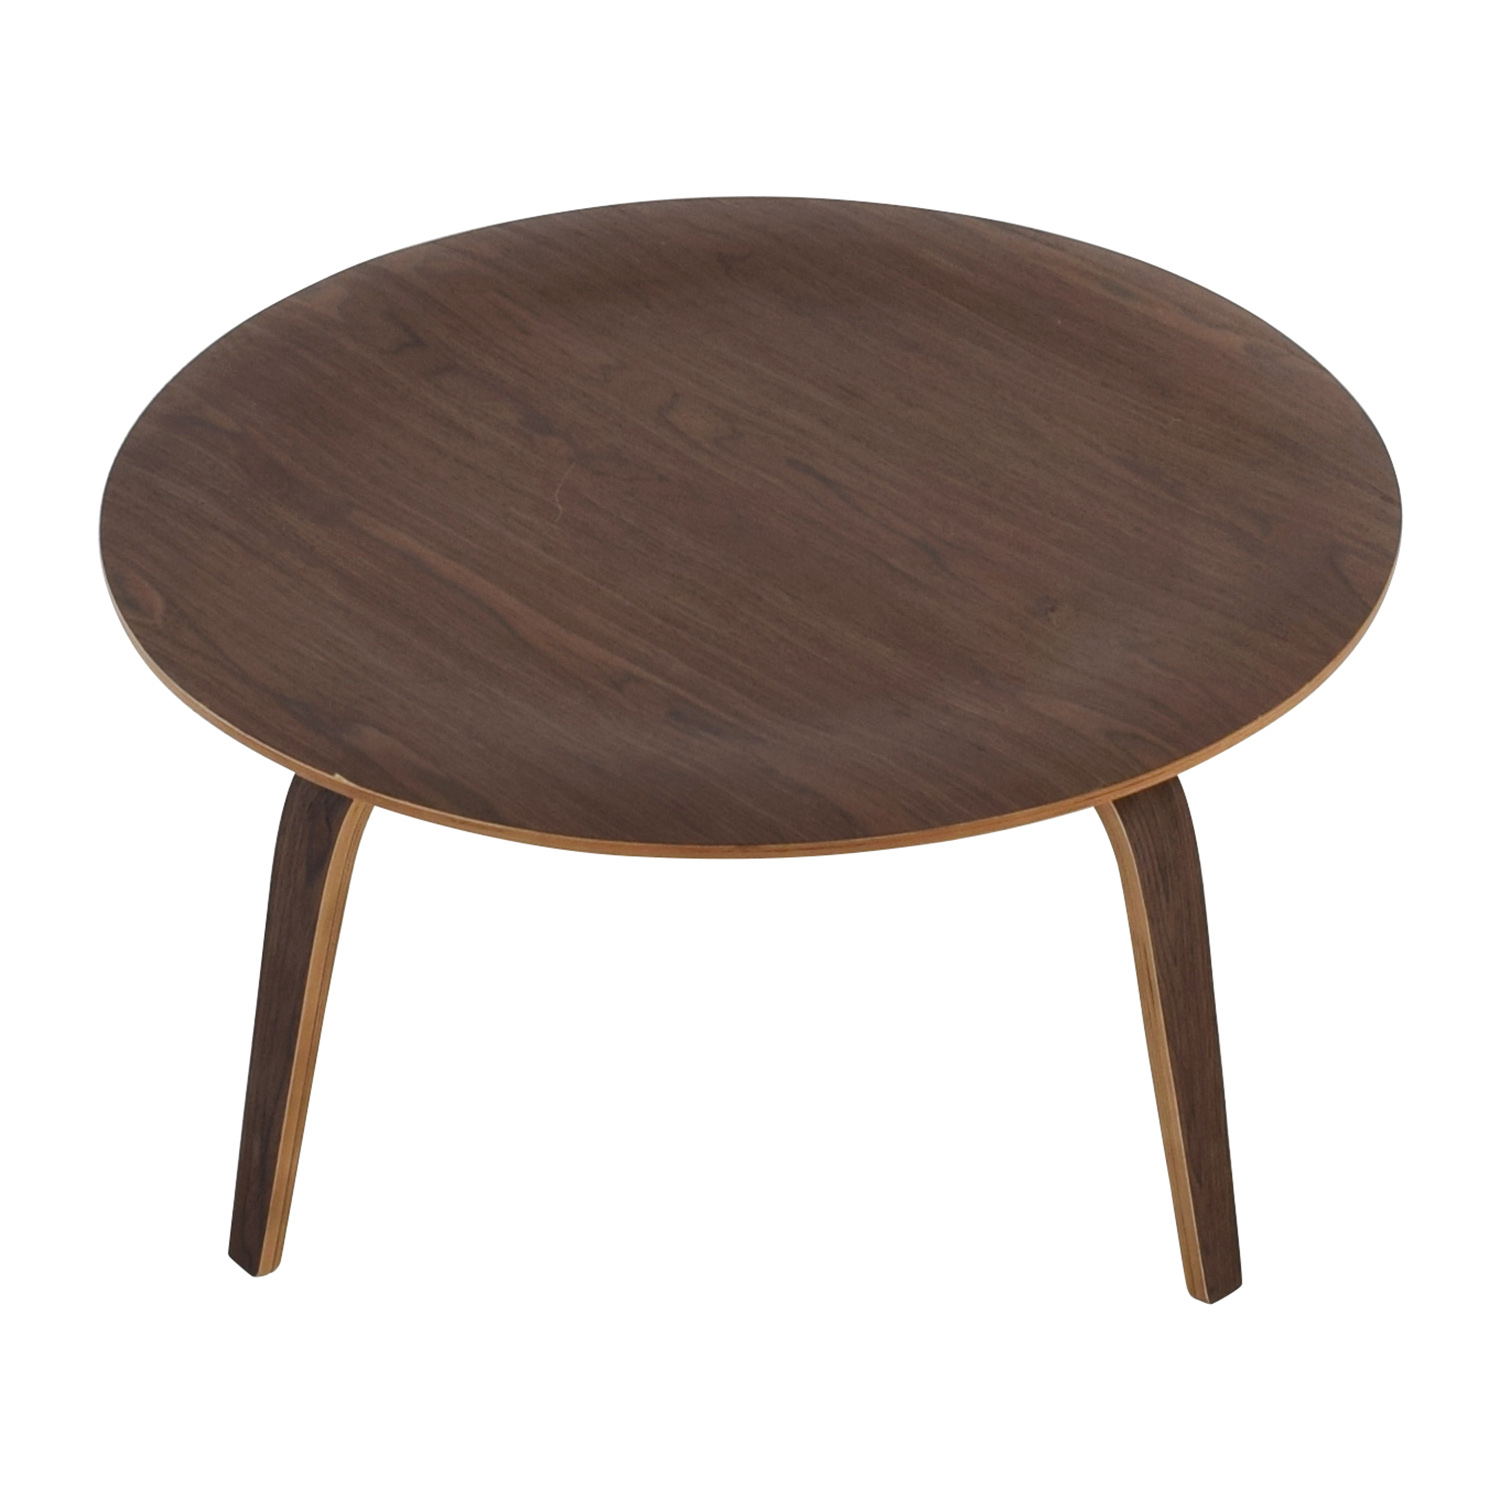 shop Modway Round Coffee Table Modway Coffee Tables